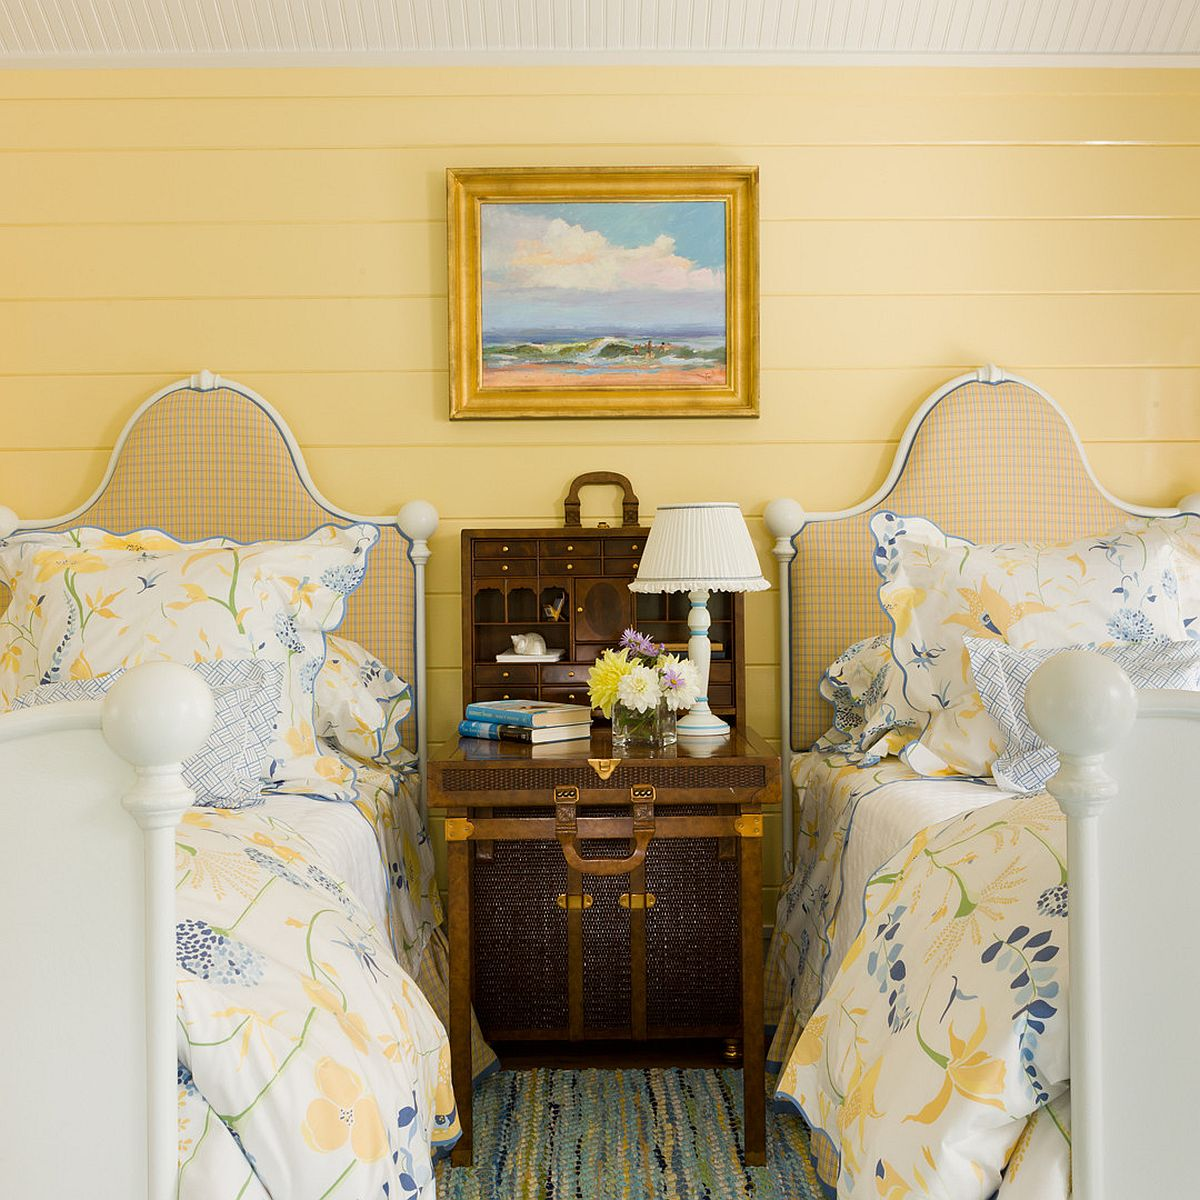 Cottage style combined with yellow beauty in the bedroom